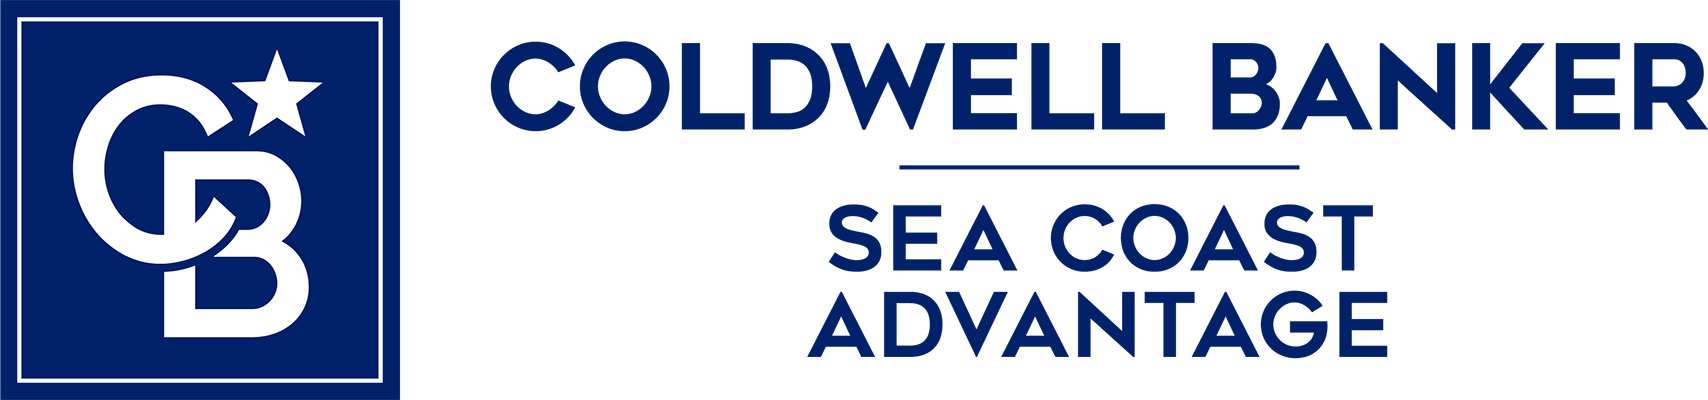 Jill Hope - Coldwell Banker Sea Coast Advantage Realty